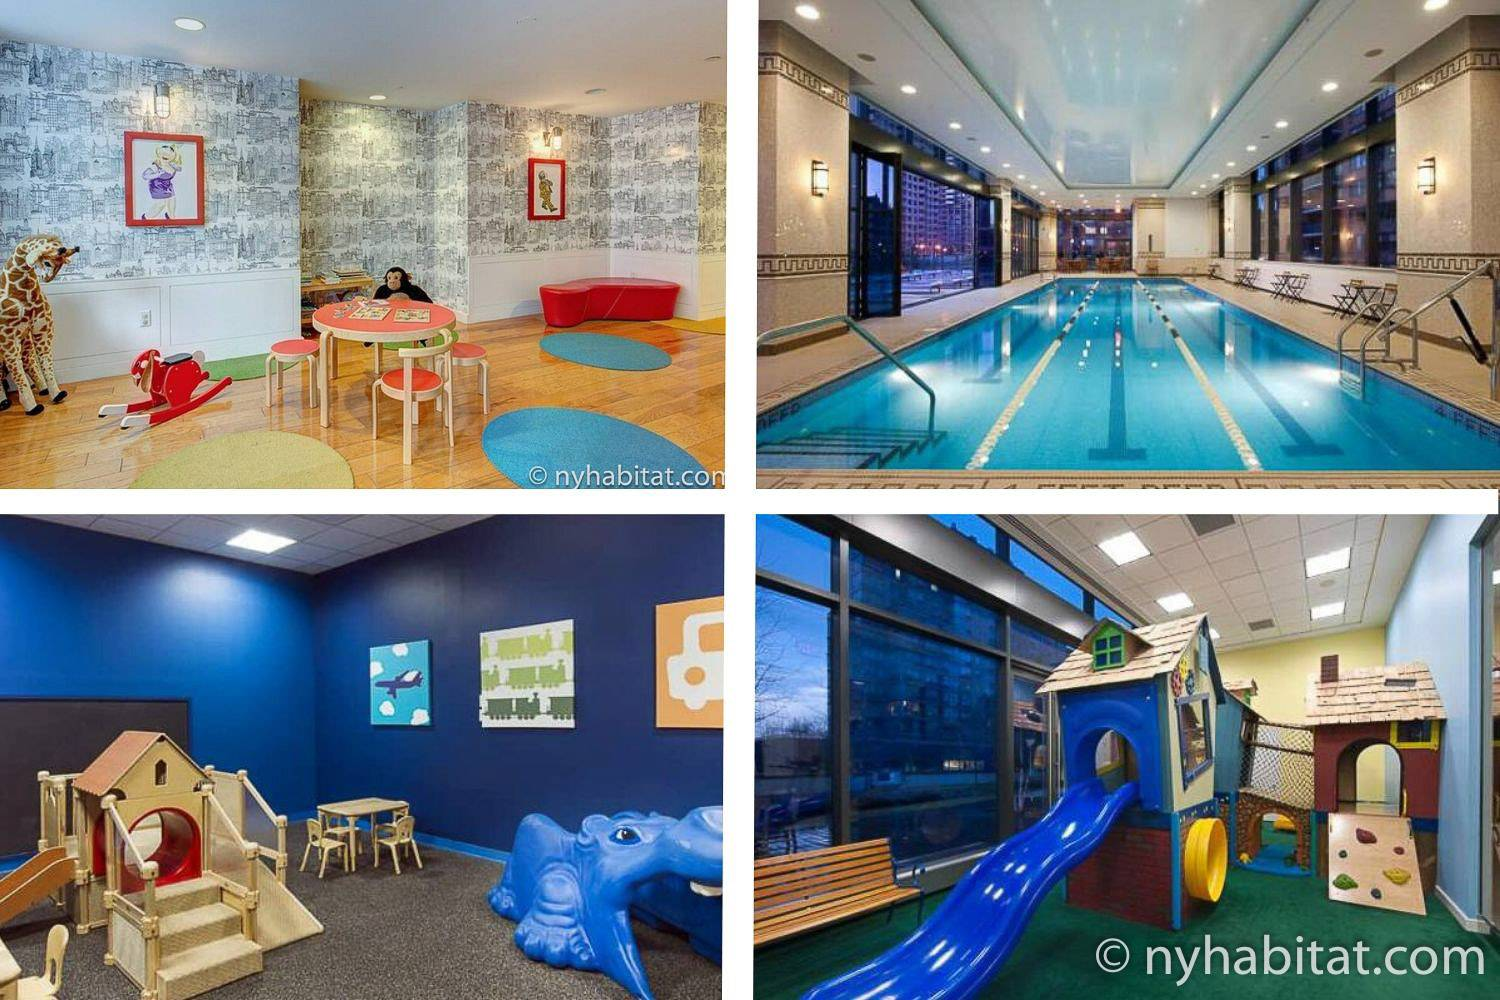 Collage image of kids playrooms and indoor pool in NYC apartment buildings